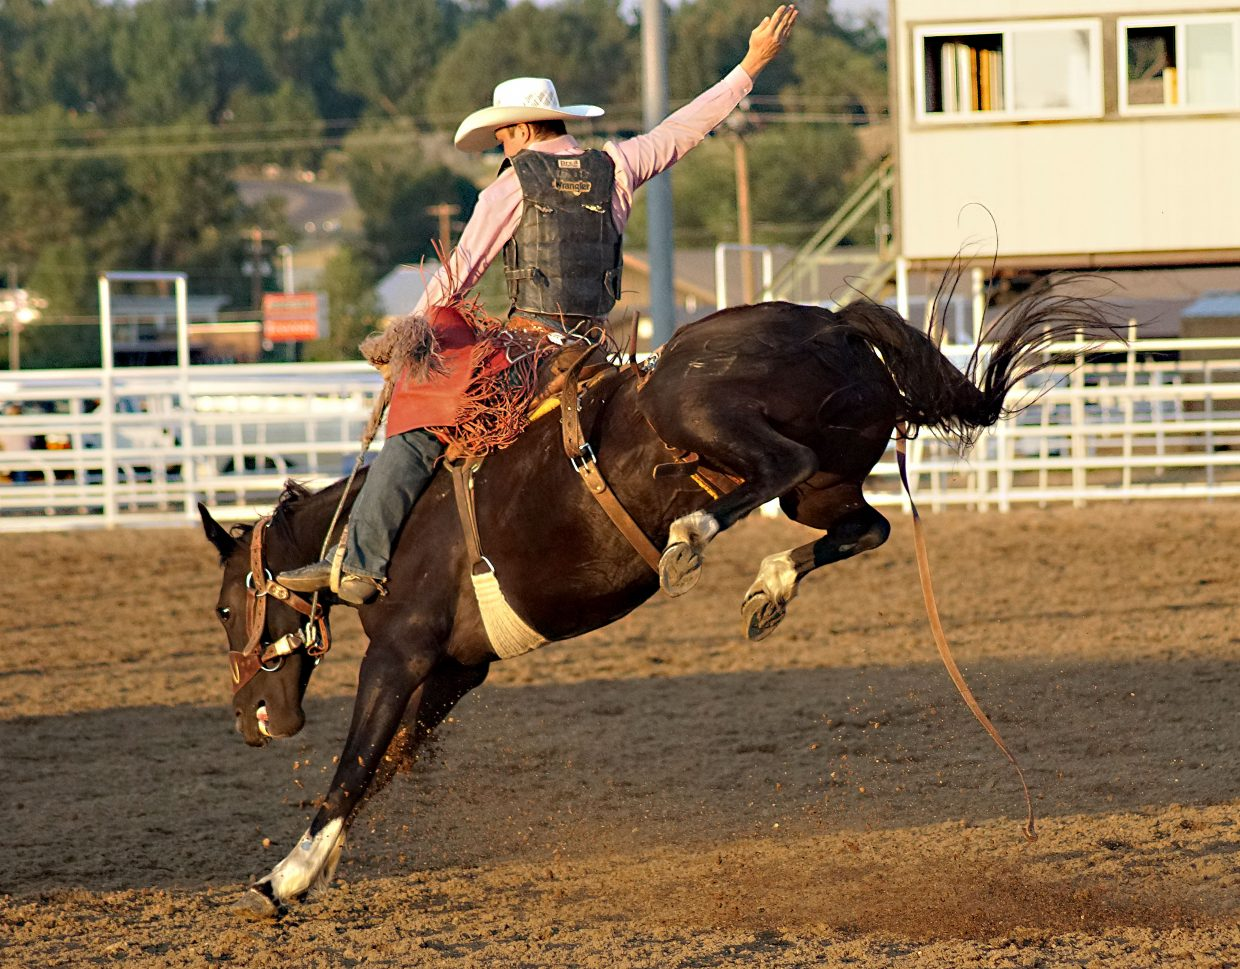 A saddle bronc rider reaches high into the air to keep his balance on a horse determined to unseat him.